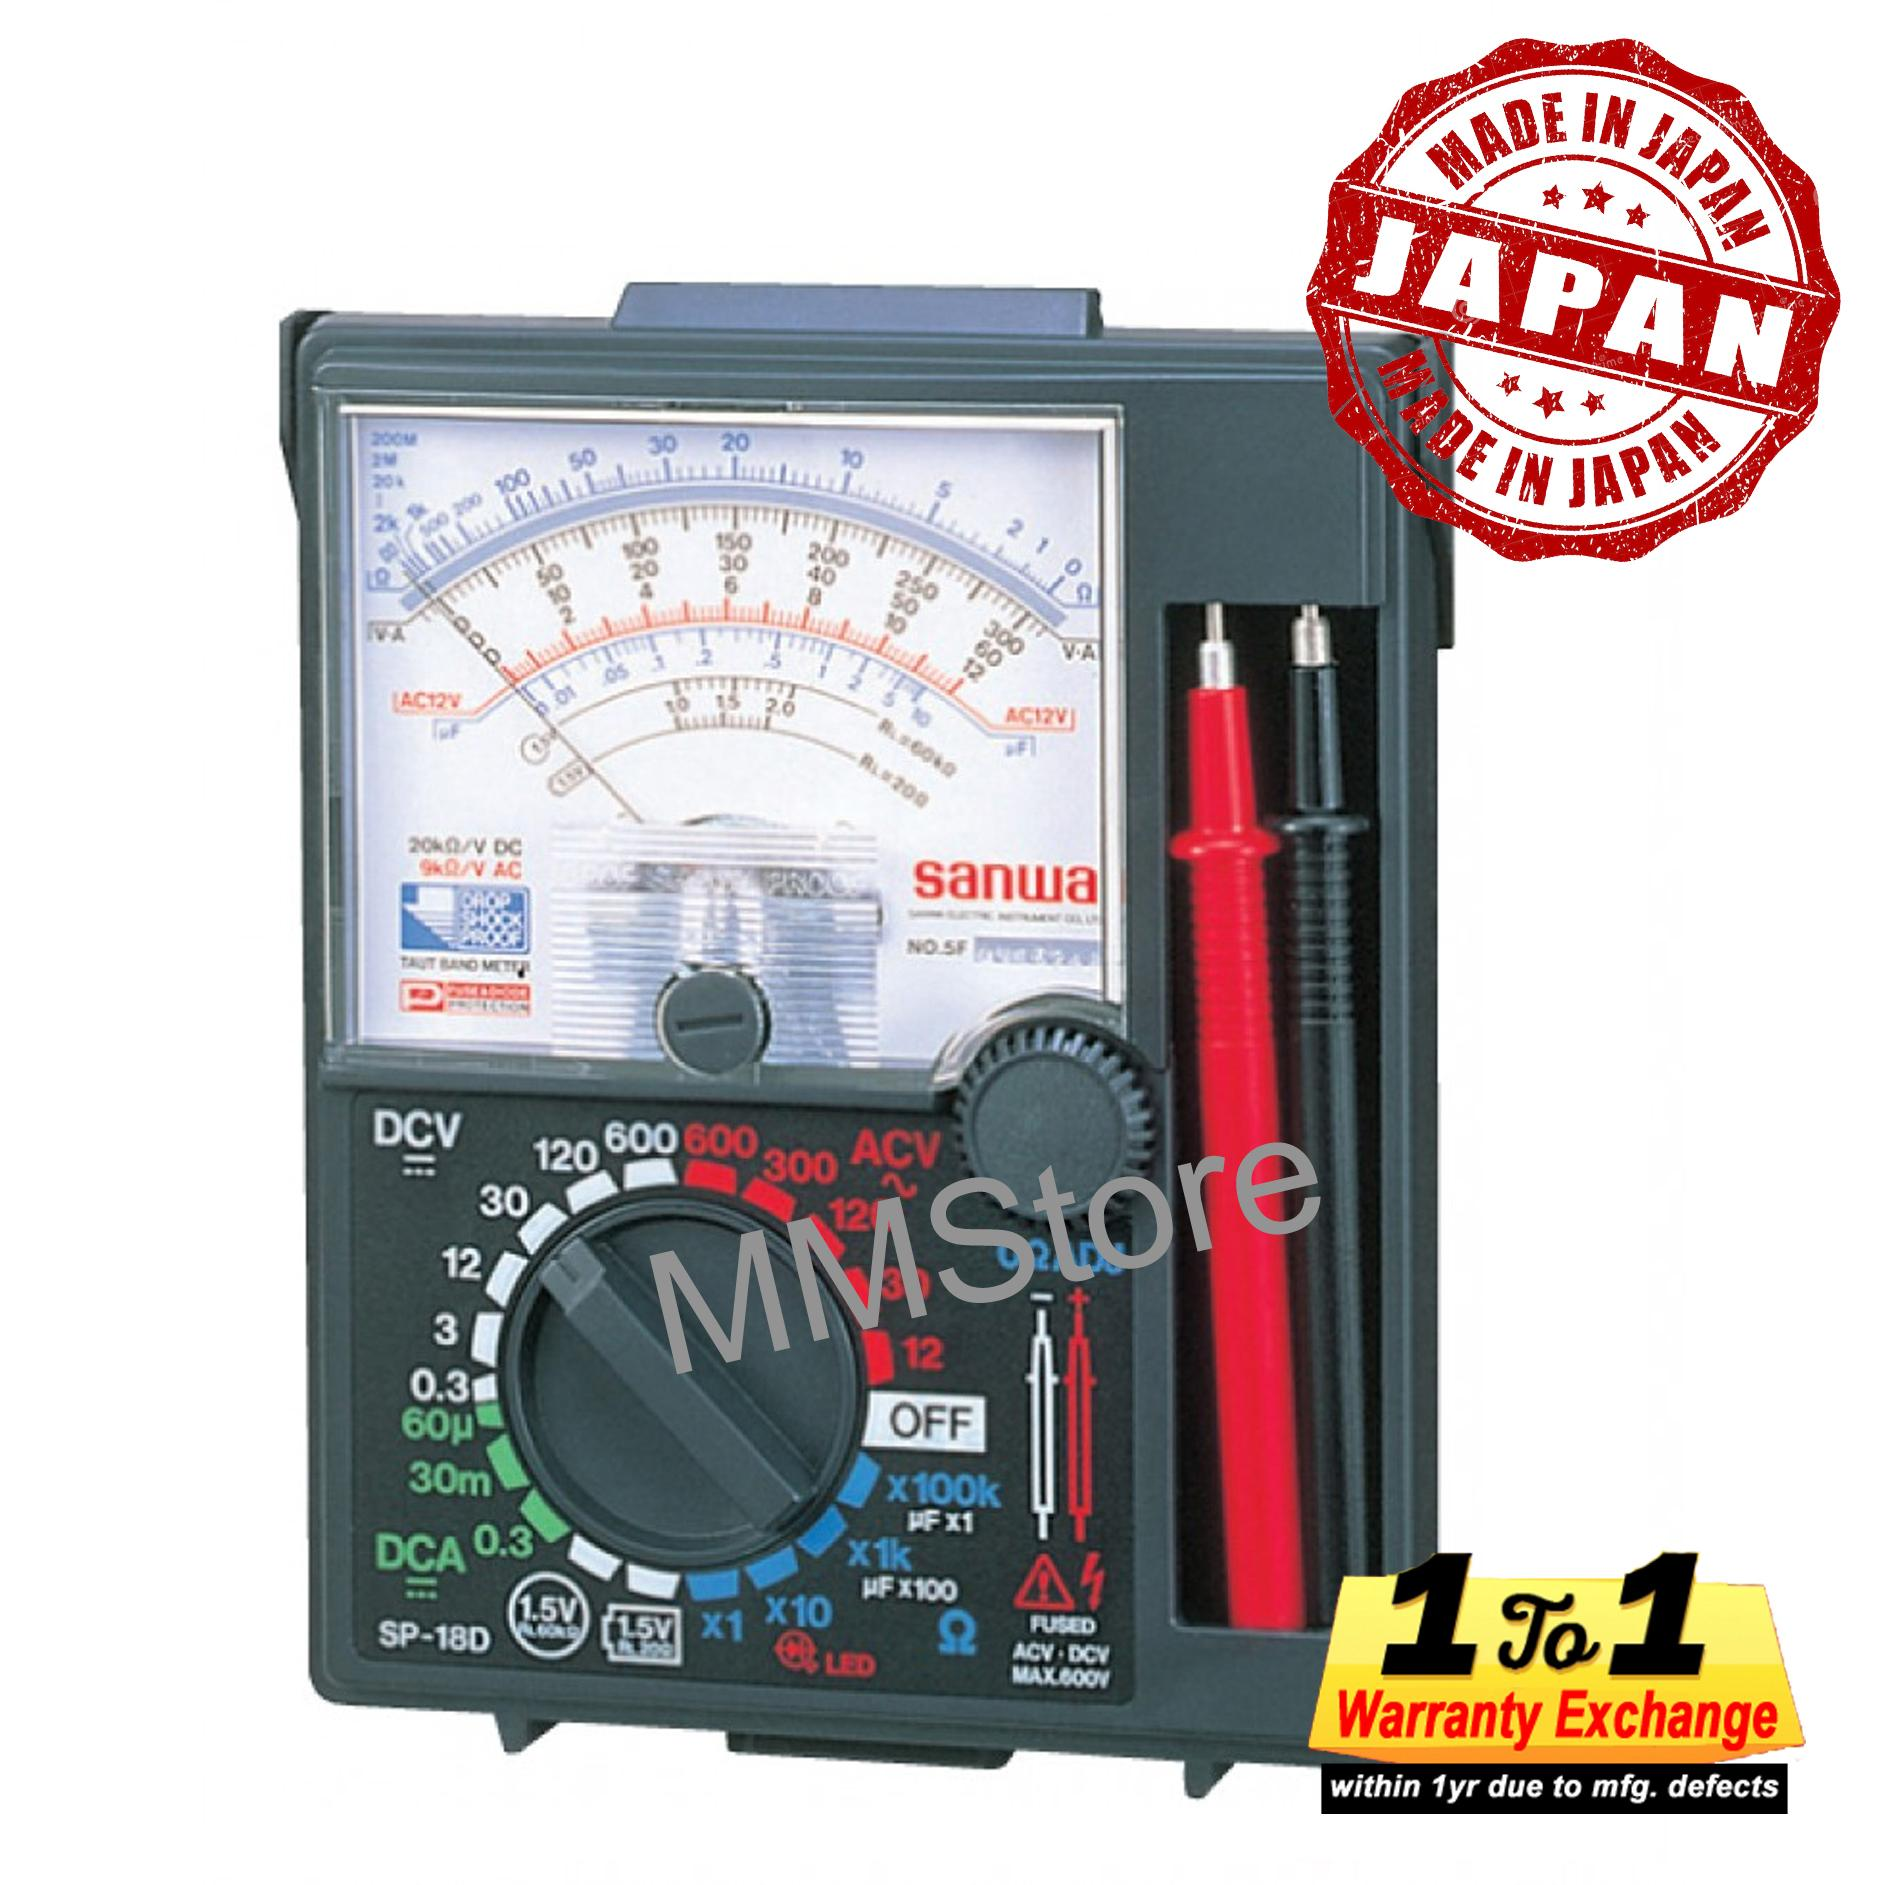 Where Can You Buy Sanwa Analog Multimeter Sp 18D